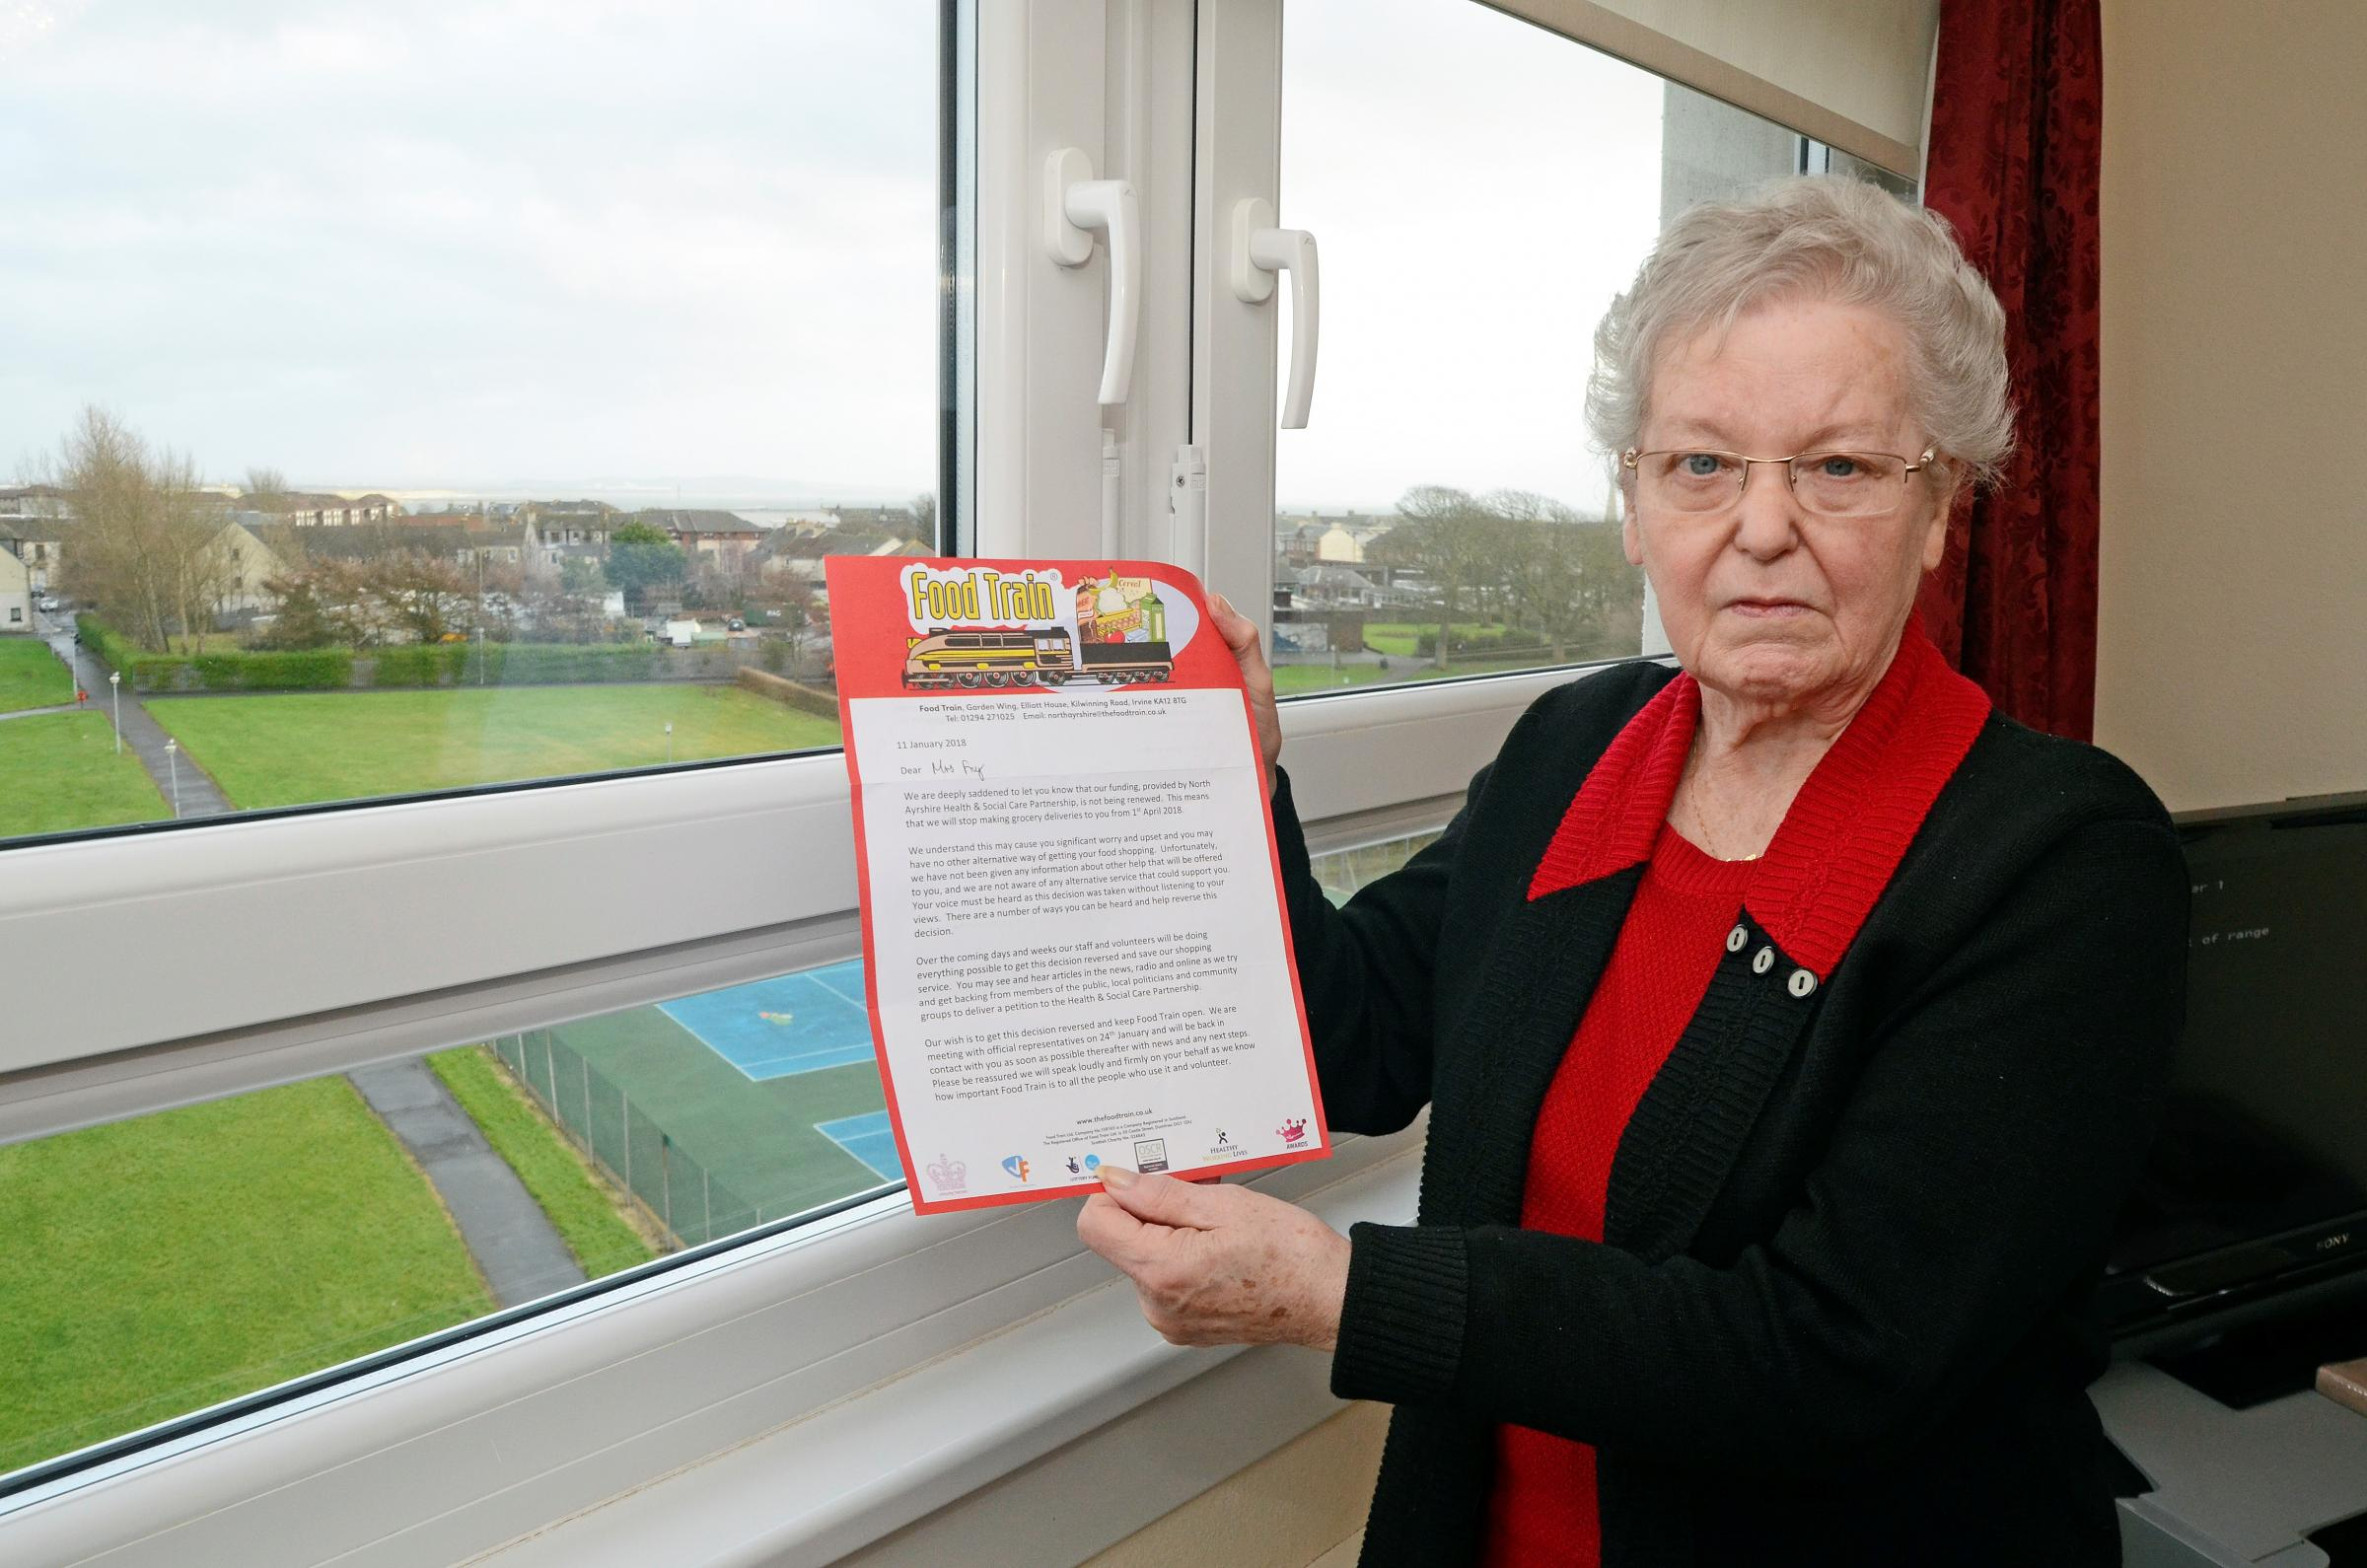 Saltcoats pensioner fears she could end up in a home after Food Train funding cut